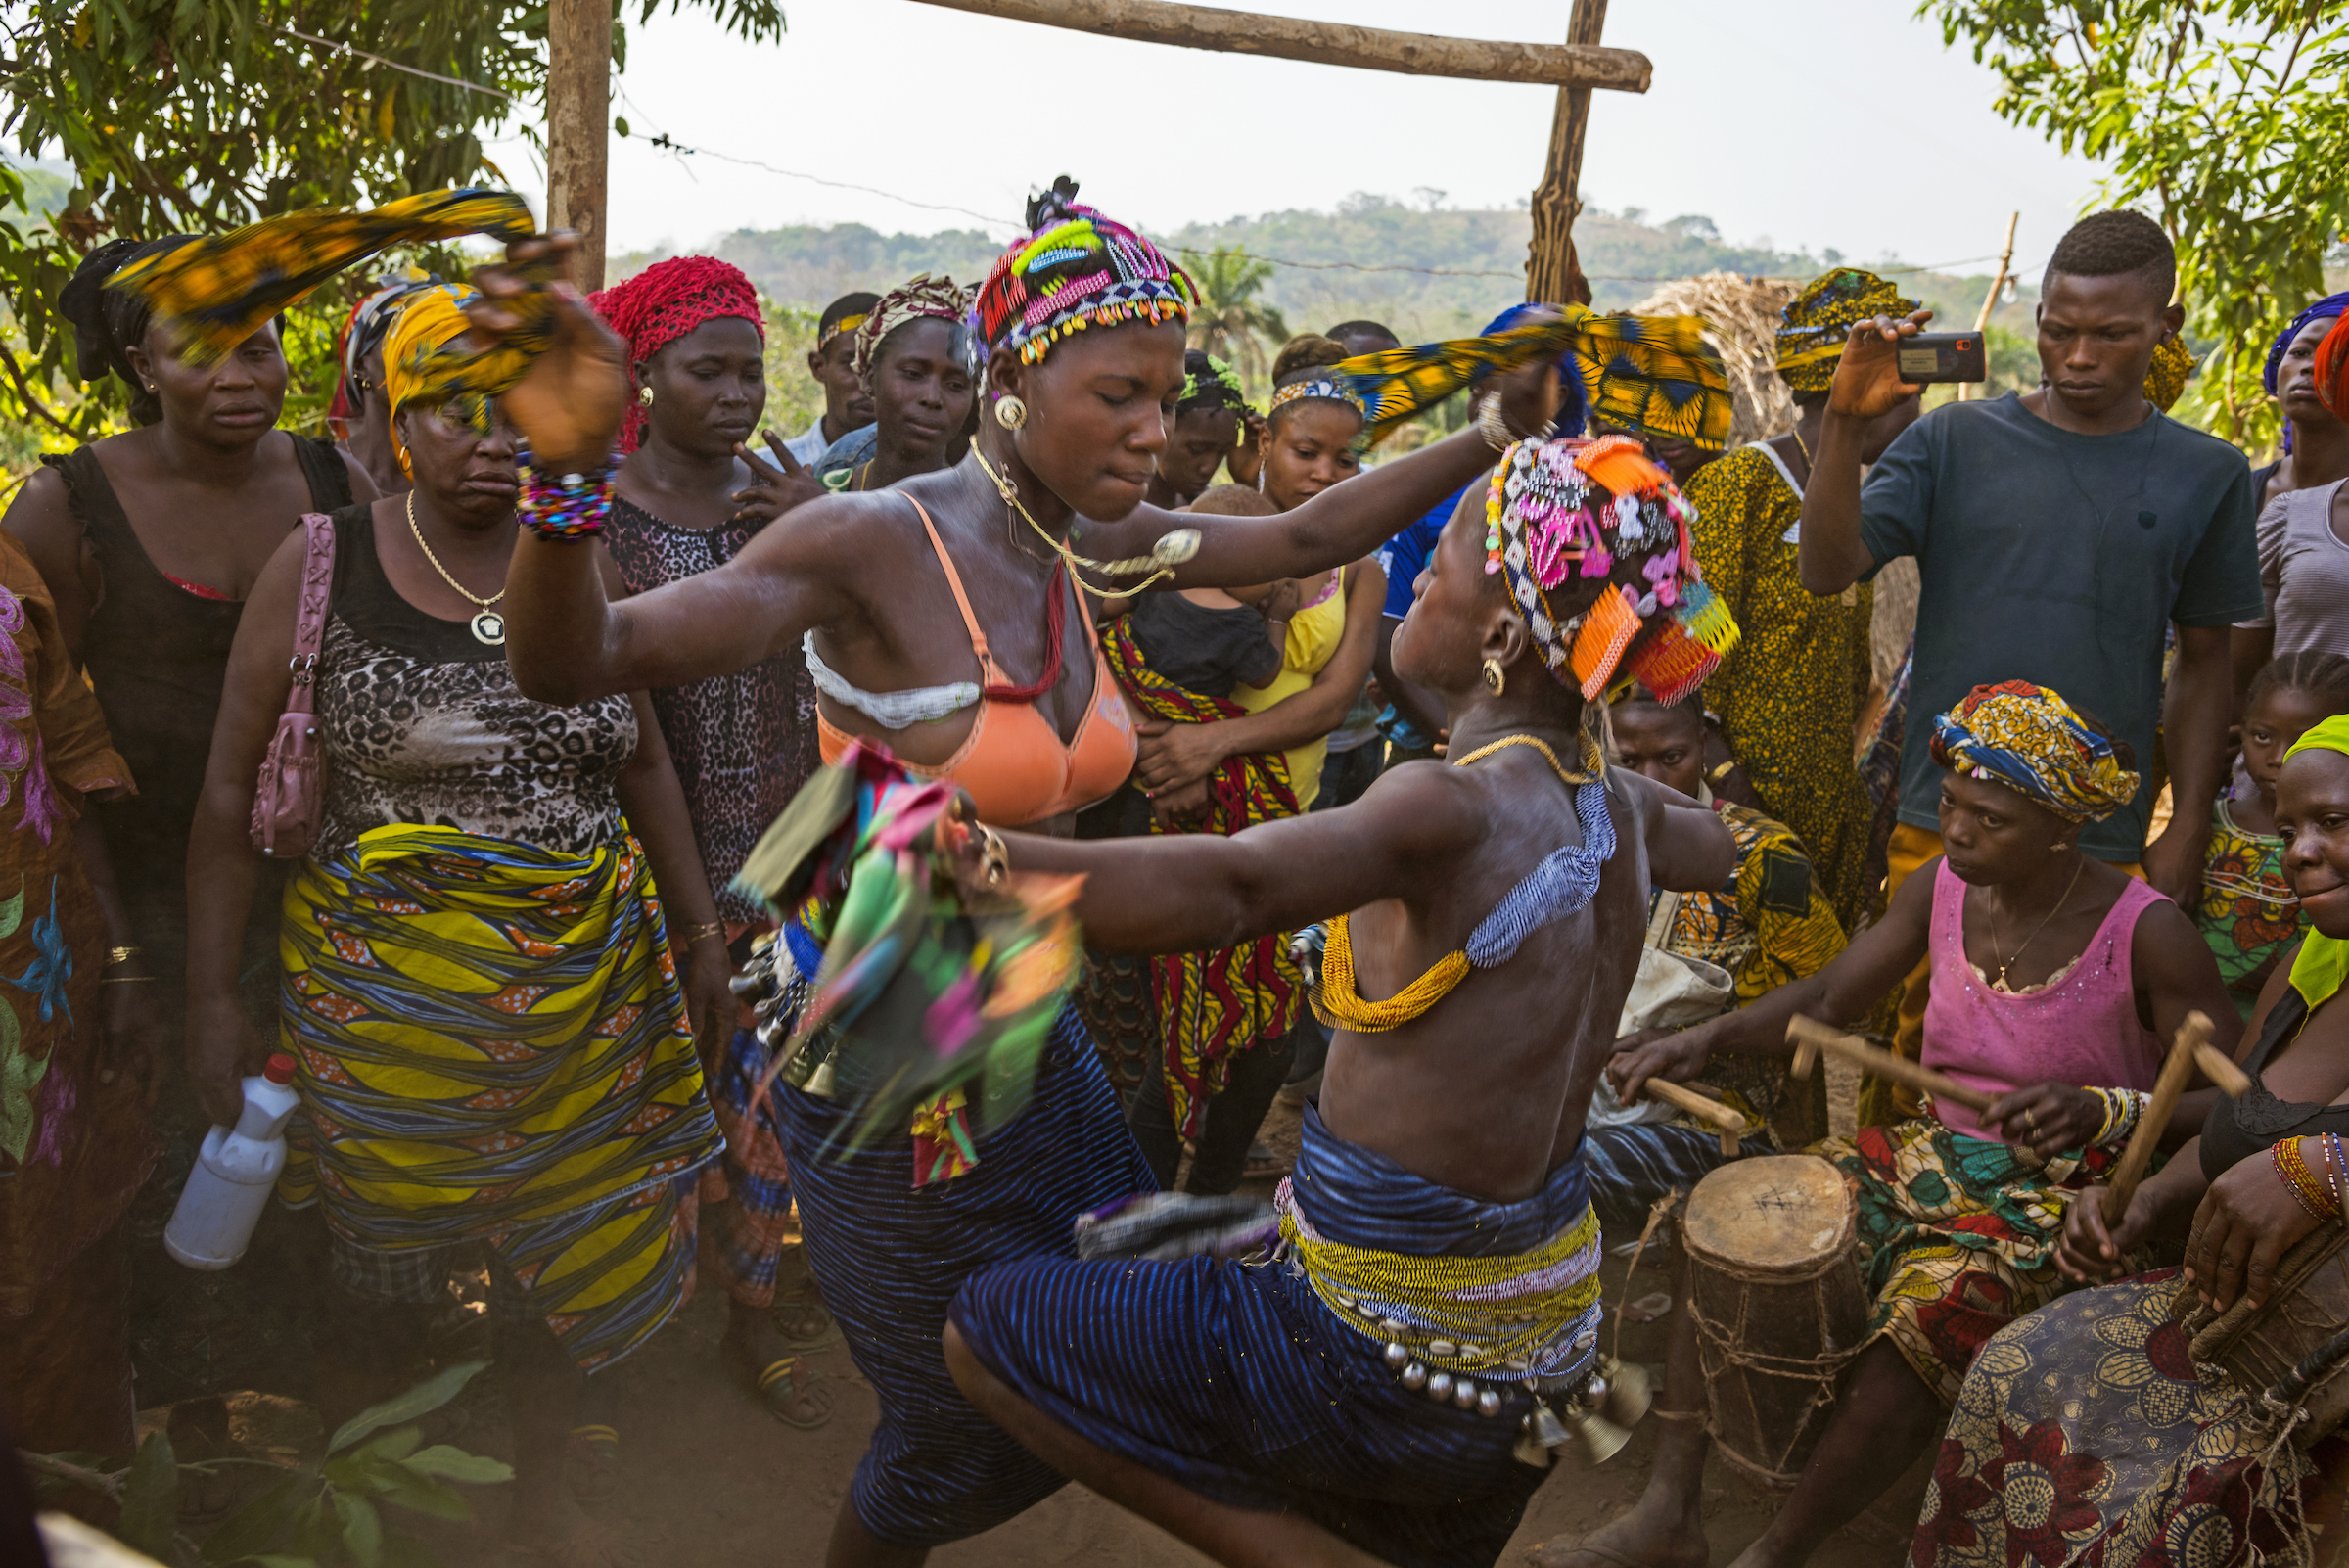 Graduates of this new kind of Bondo ceremony that does not include genital cutting celebrate with family and friends.